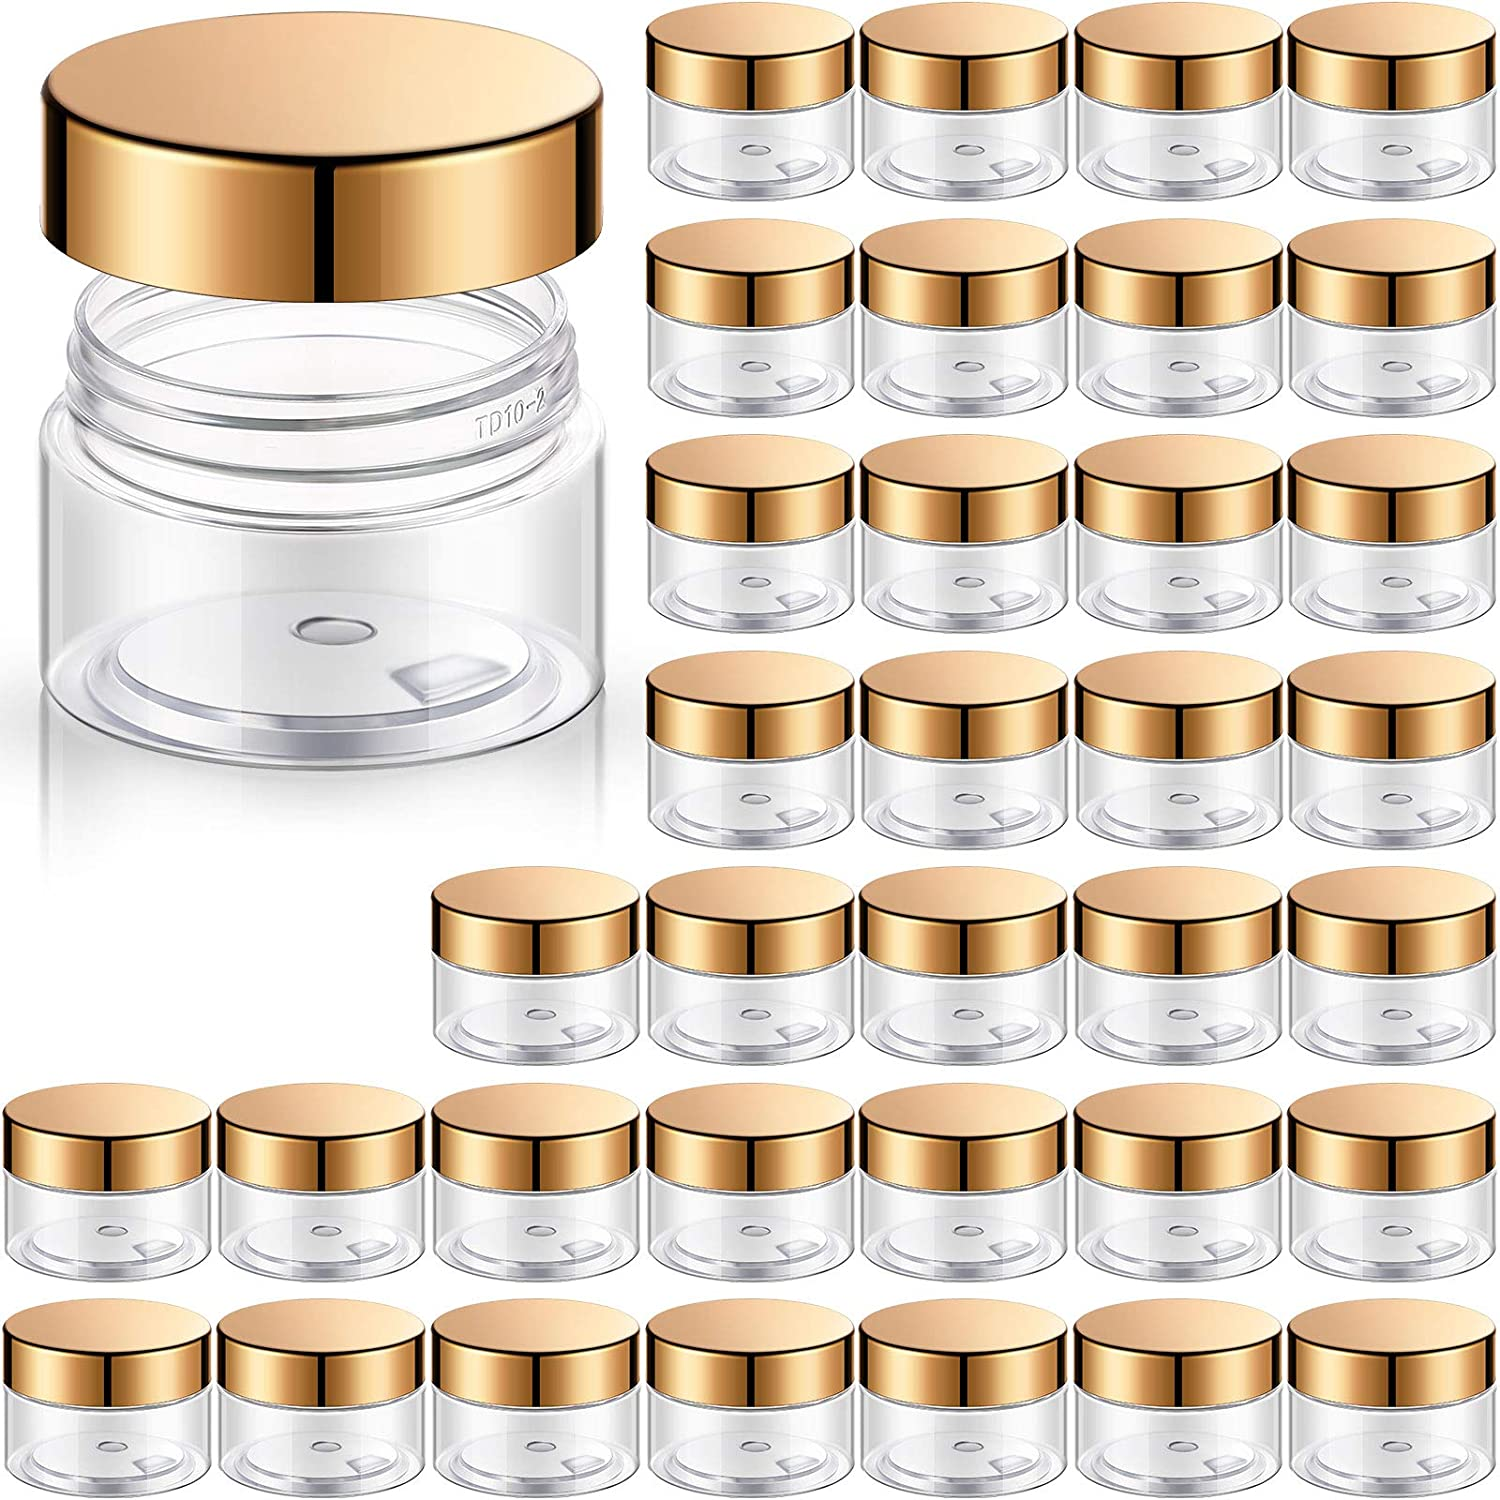 Sale item 36 Packs Plastic Jars Round Colorado Springs Mall Container Clear Leak Proof Cosmetic